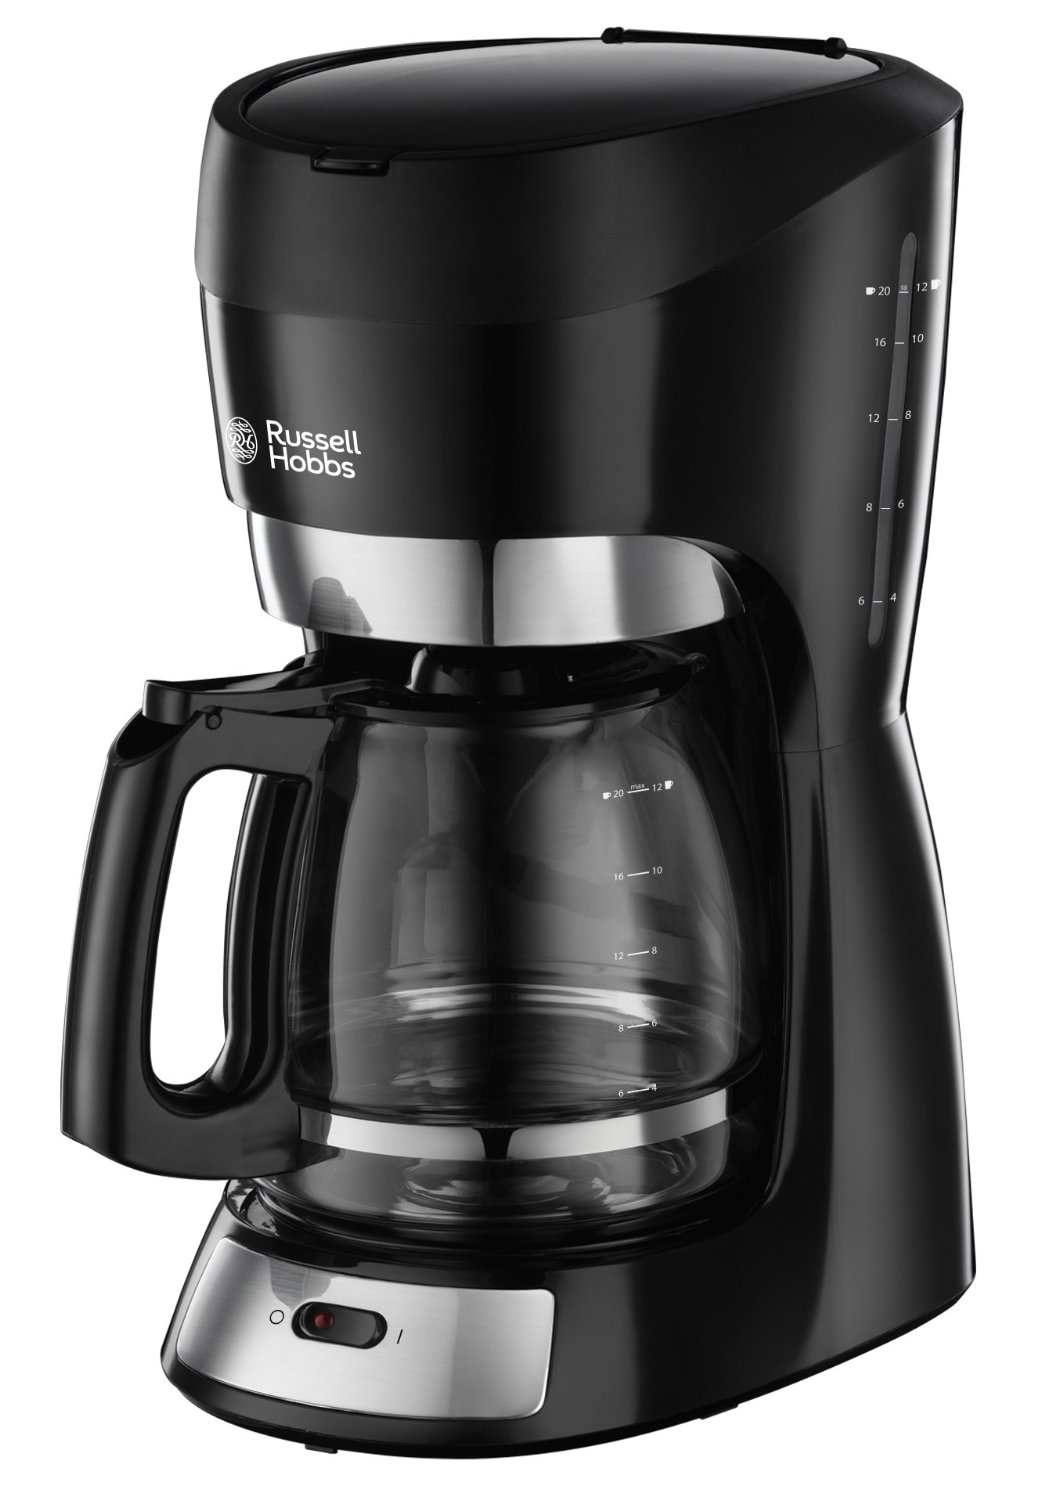 russell hobbs futura set kaffeemaschine toaster wasserkocher fr hst cksset ebay. Black Bedroom Furniture Sets. Home Design Ideas